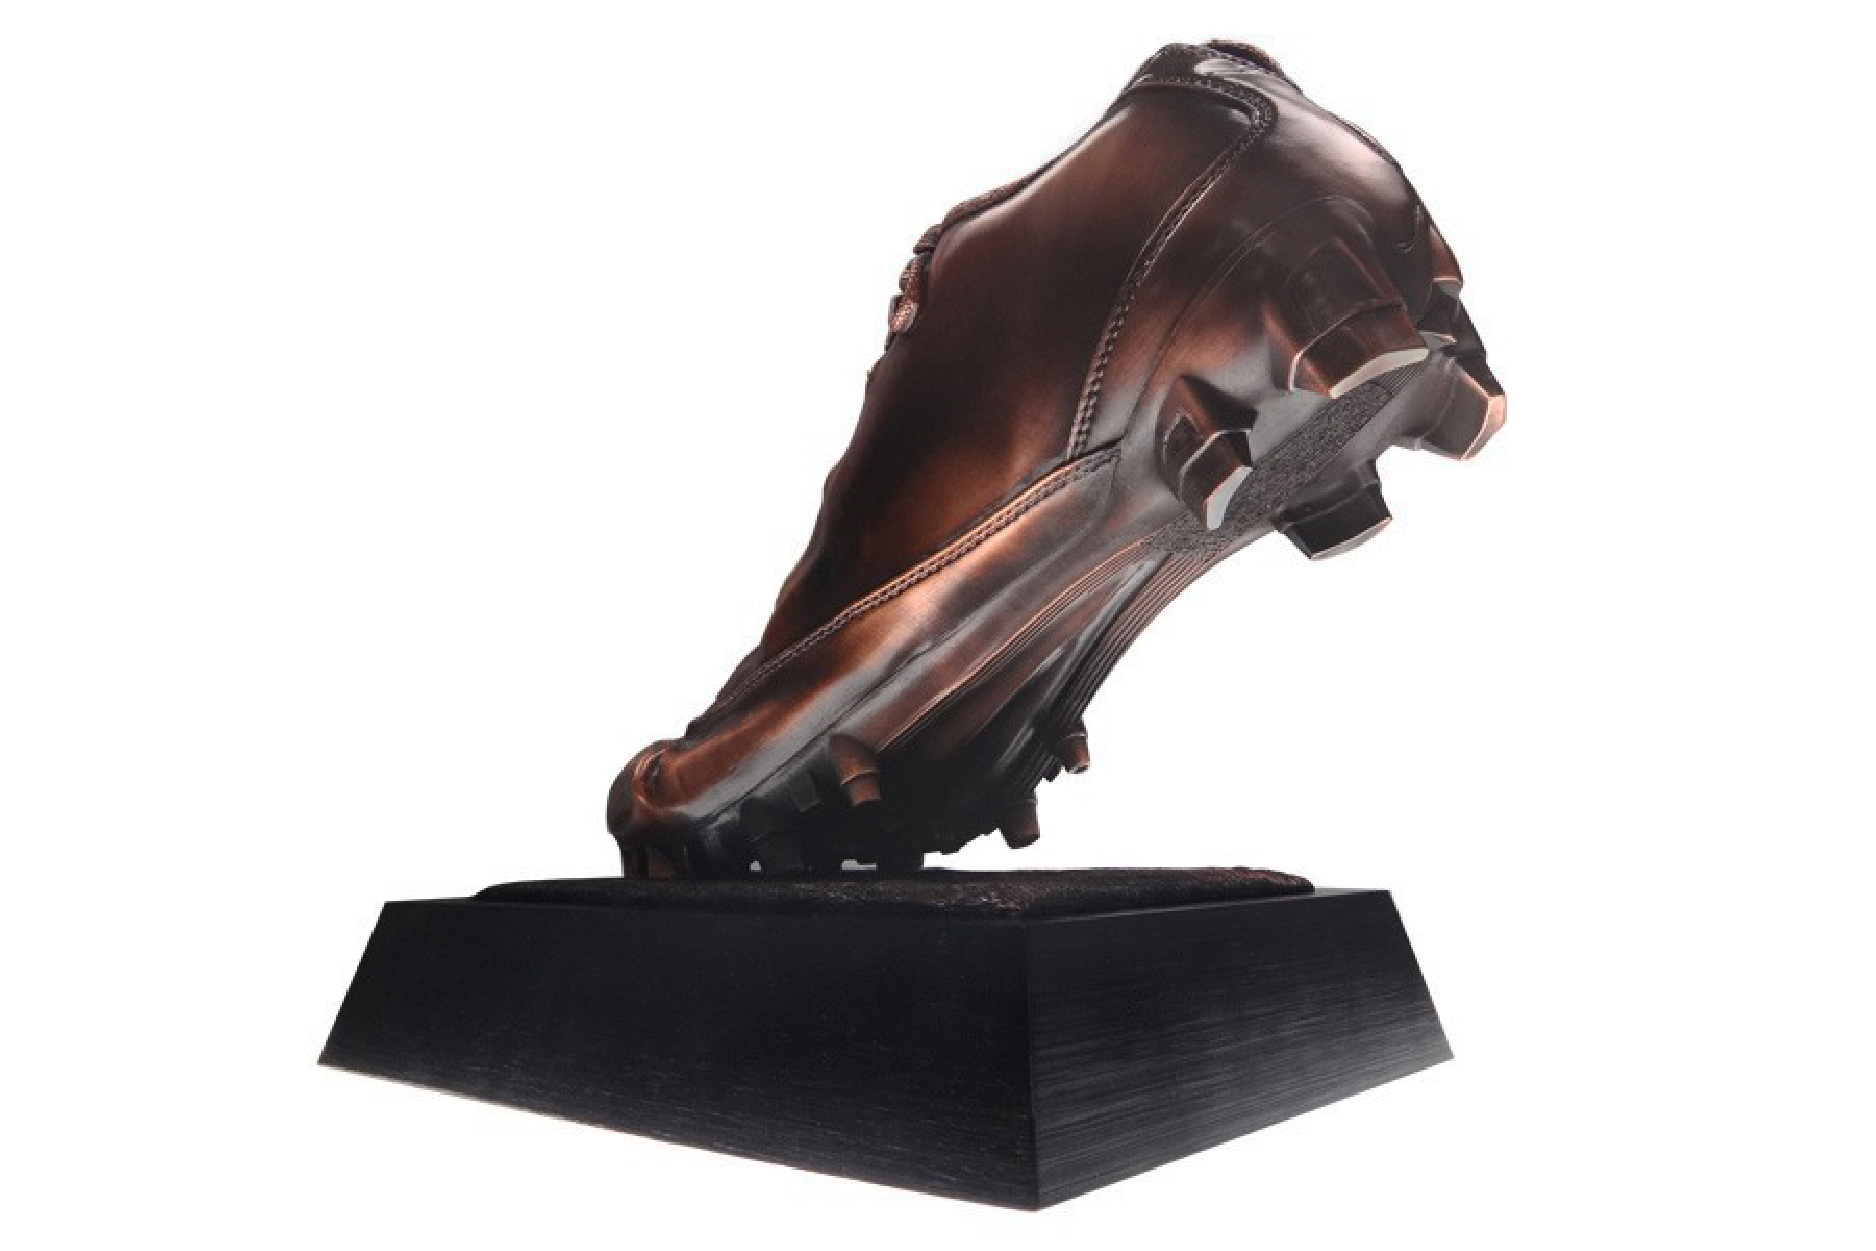 A realistic football cleat running shoe award crafted by Society Awards